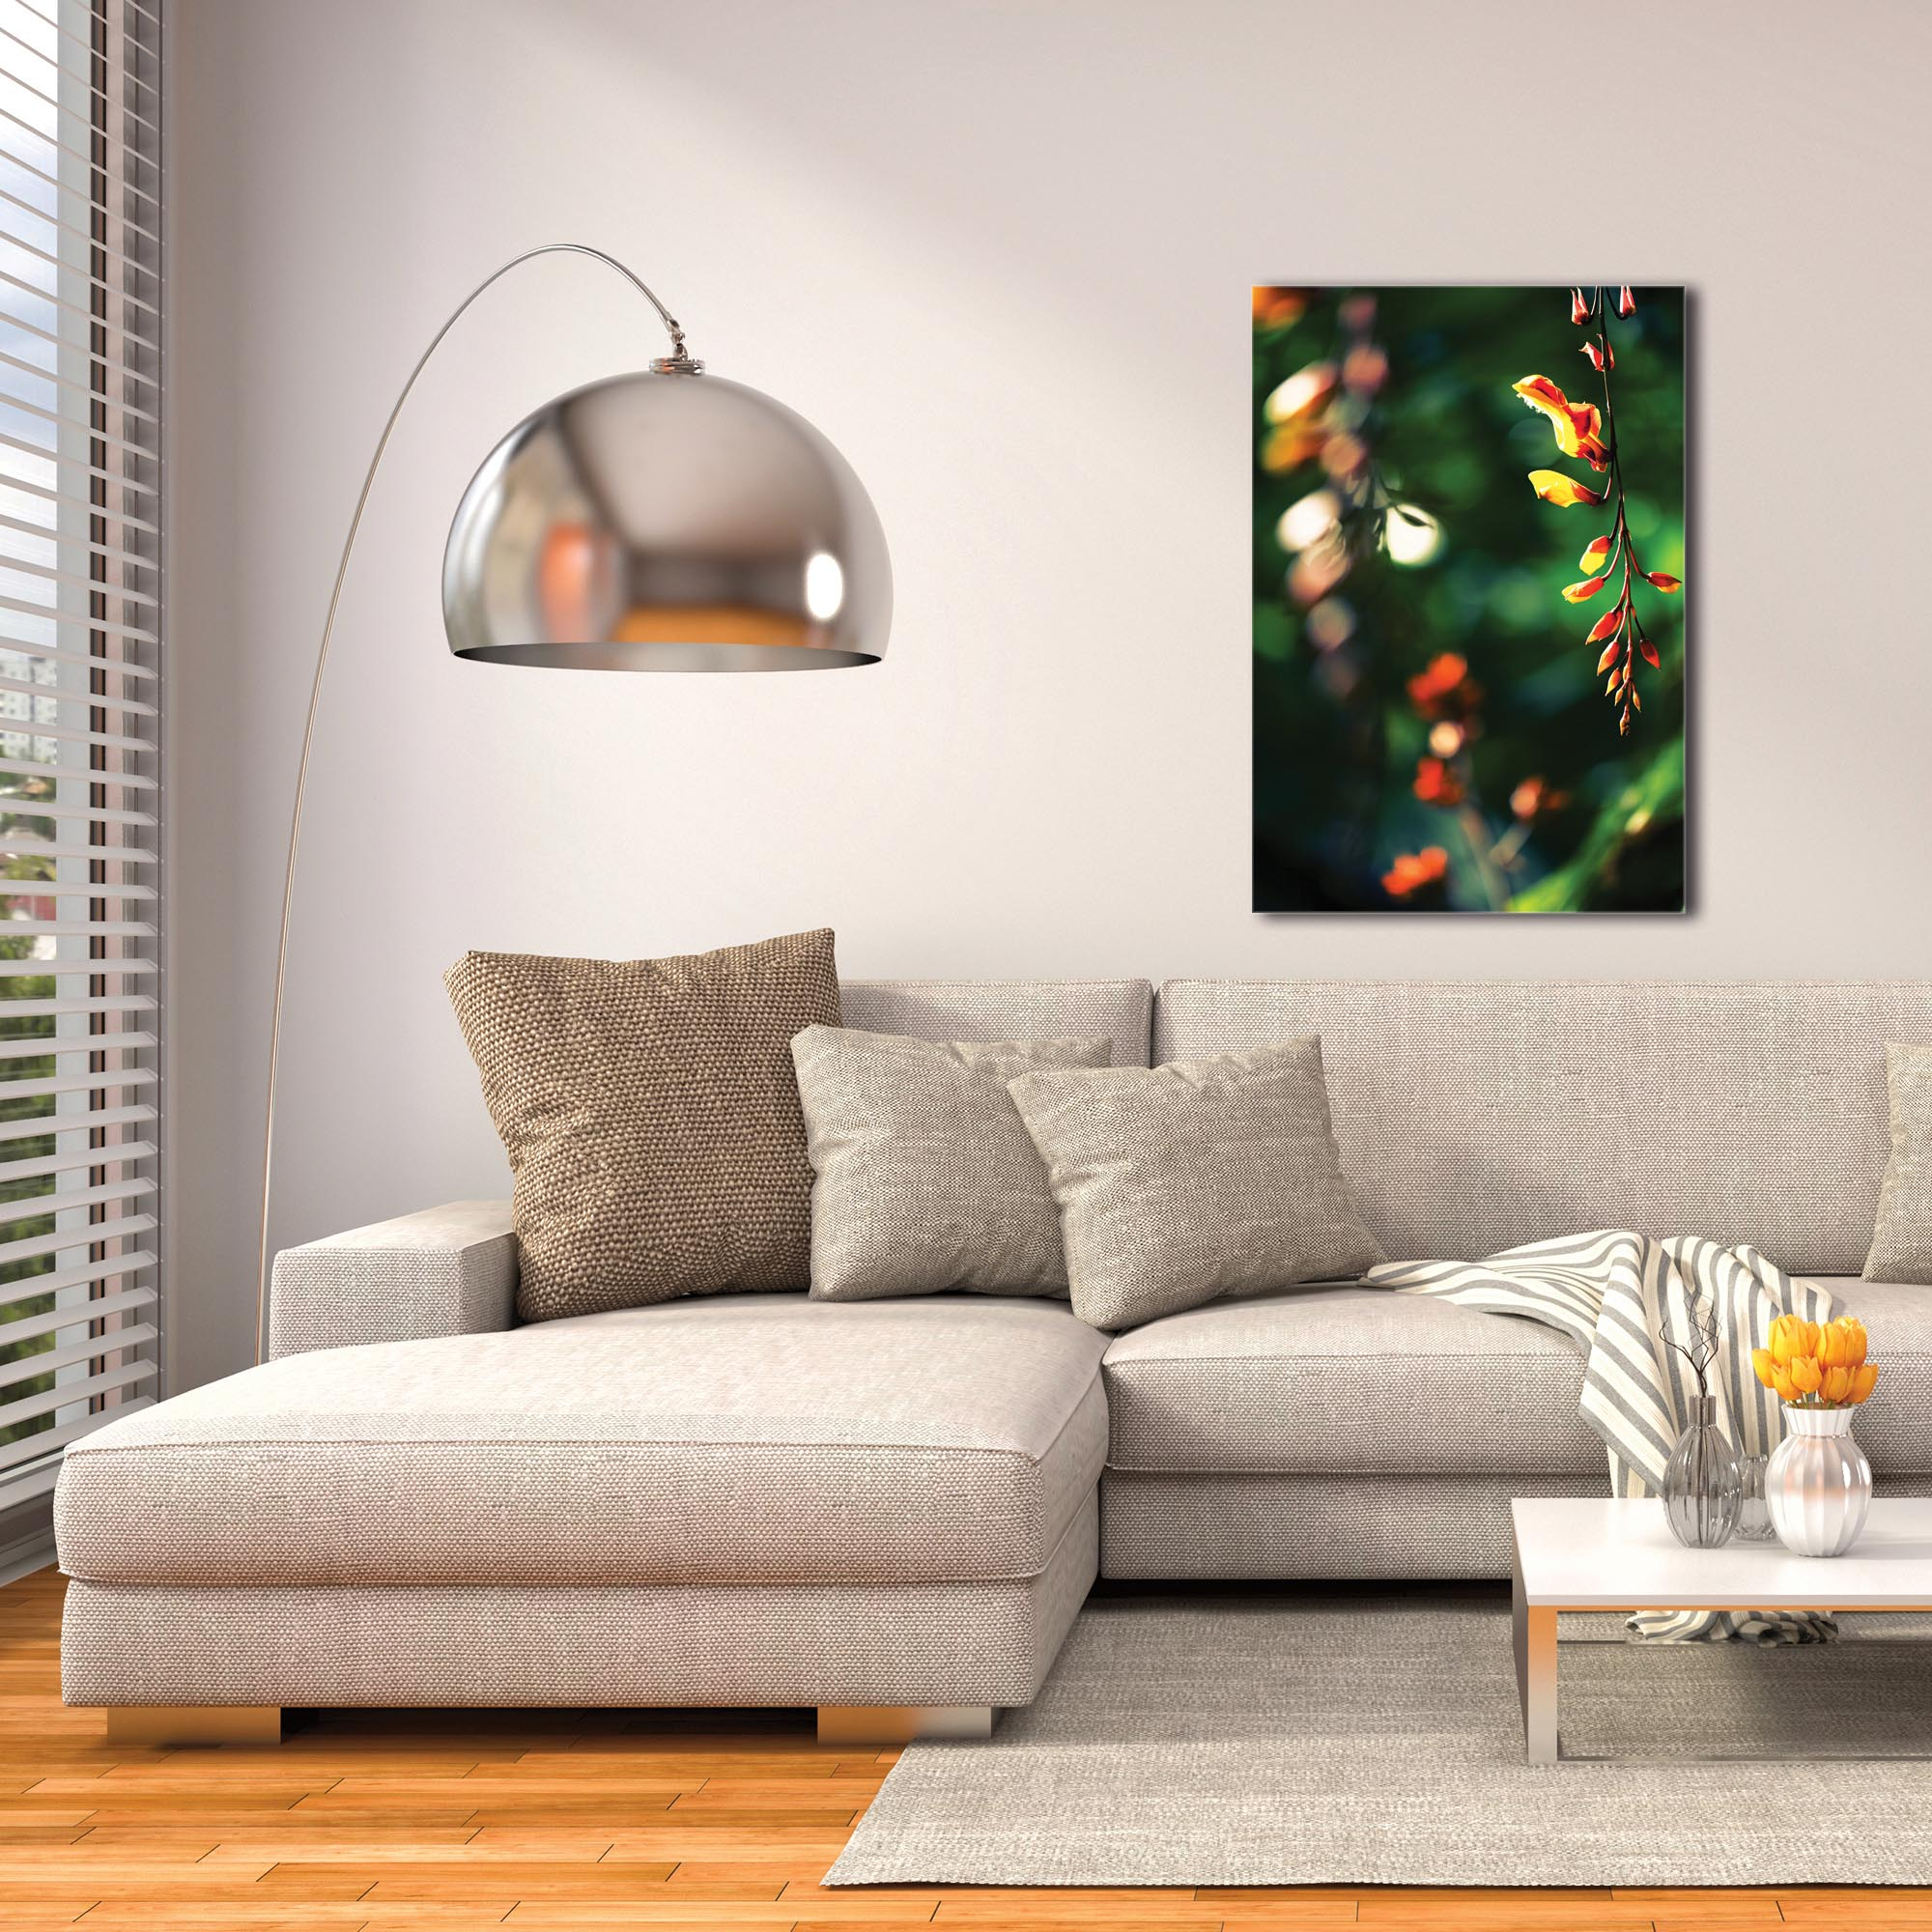 Nature Photography 'Hanging Flowers' - Flower Blossom Art on Metal or Plexiglass - Image 3